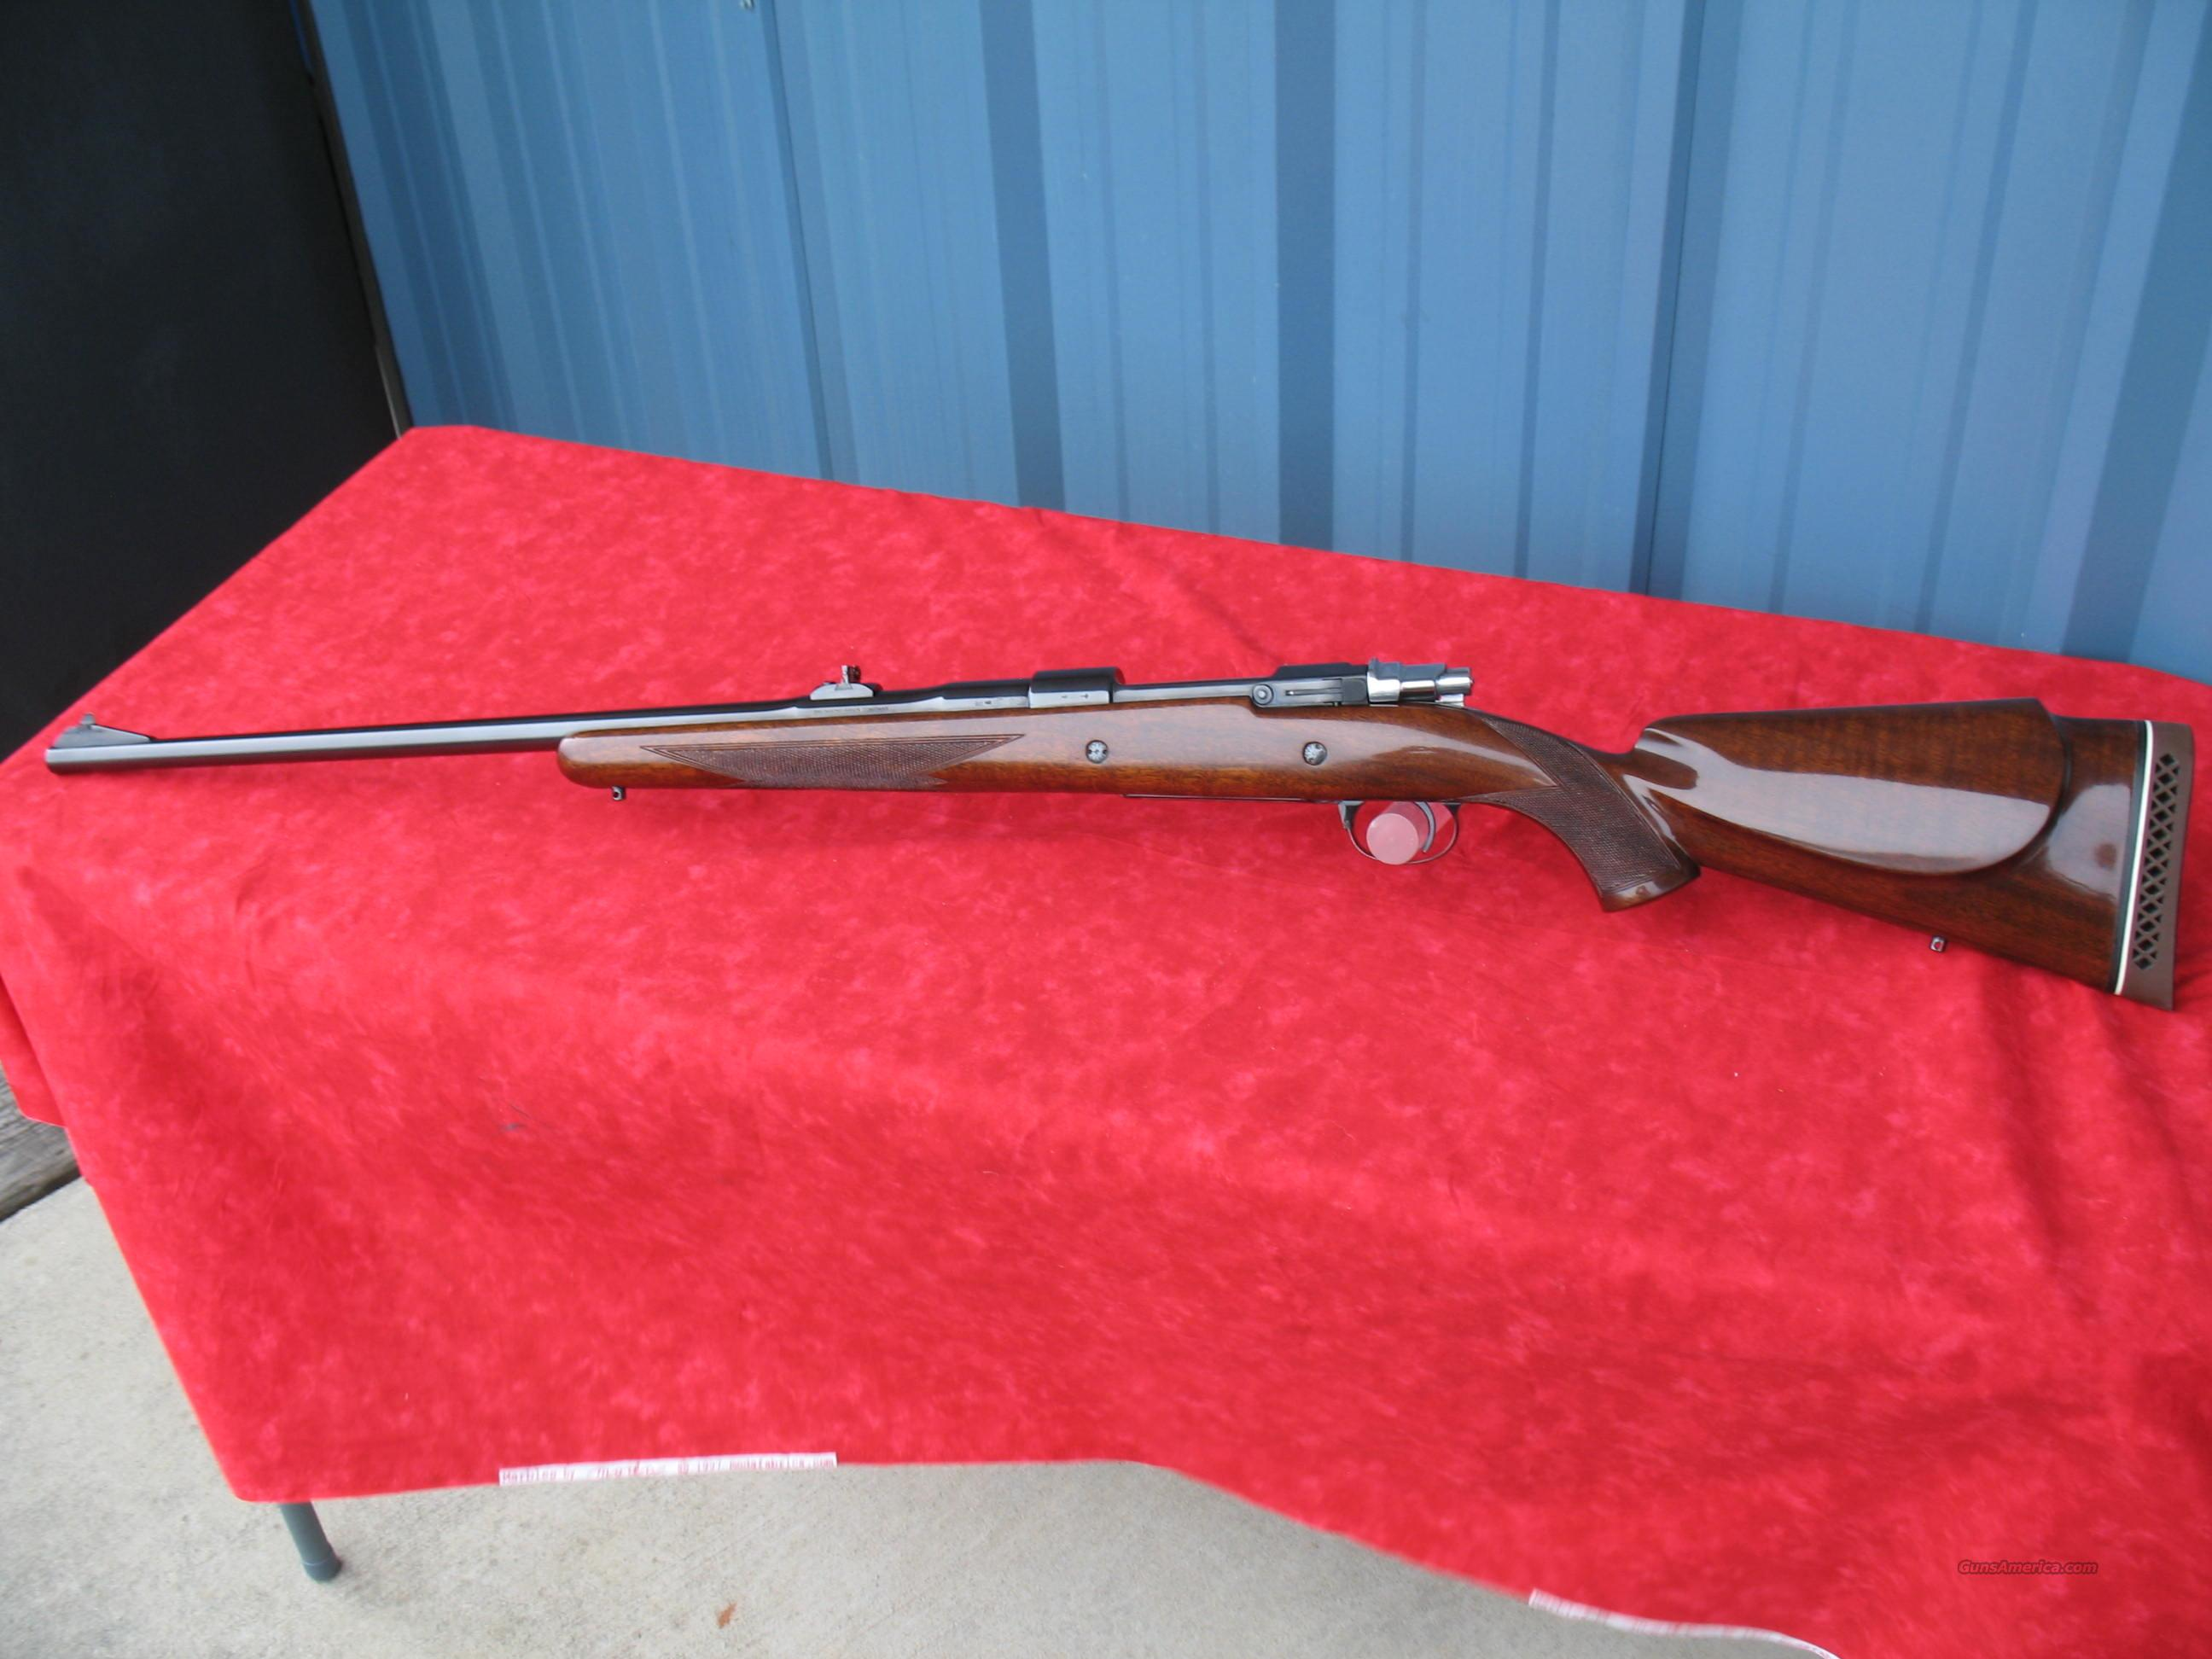 BROWNING FN SAFARI GRADE RIFLE 7MM MAG. 1966 GUN  Guns > Rifles > Browning Rifles > Bolt Action > Hunting > Blue